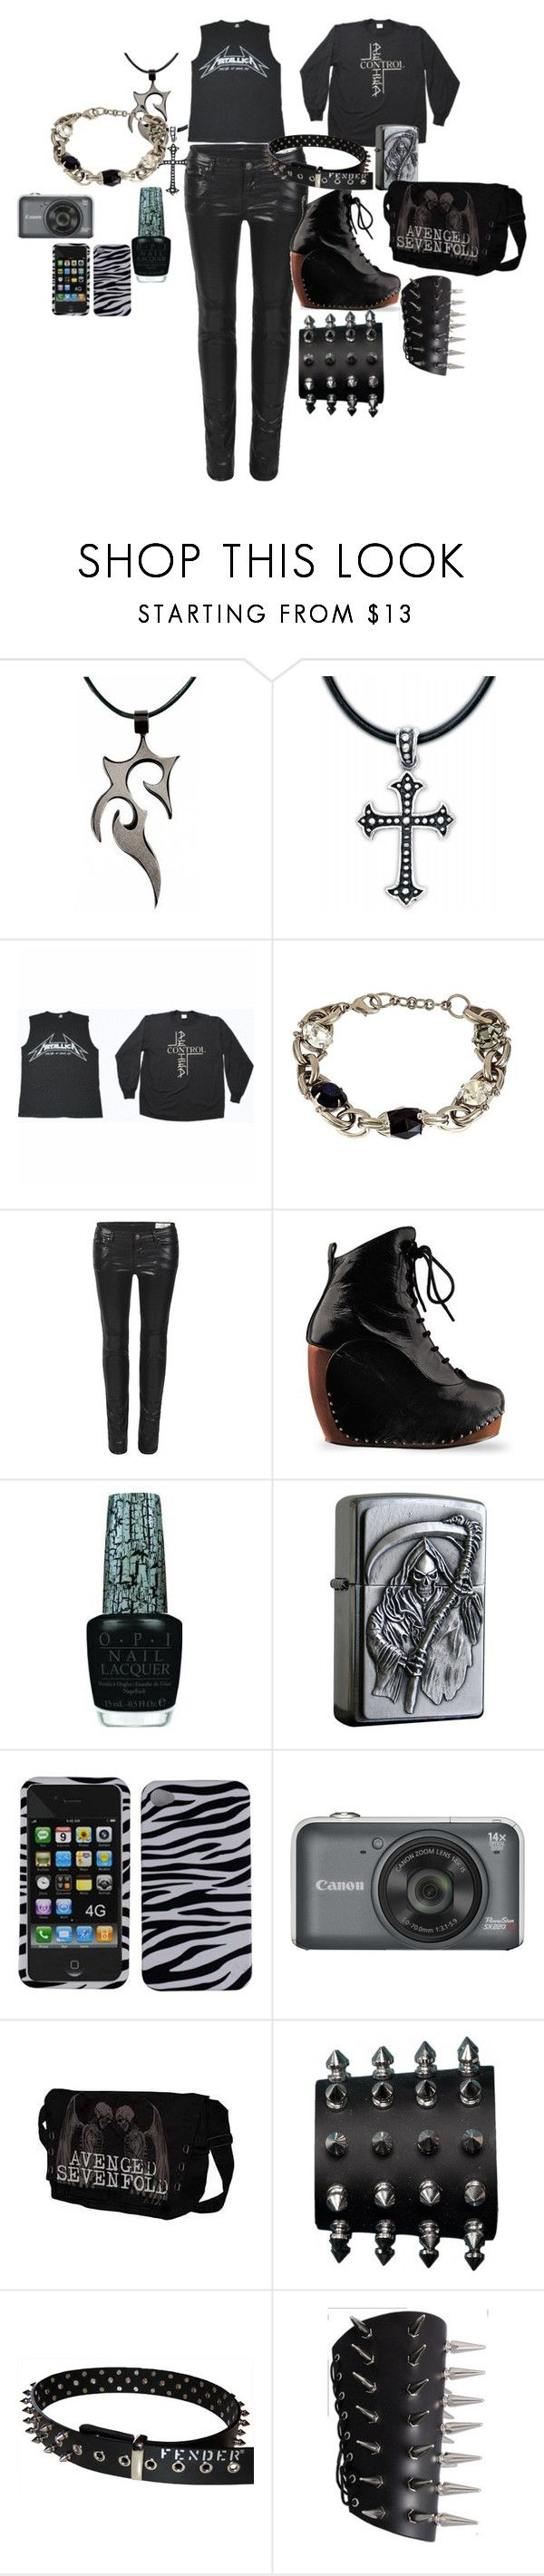 """""""Metal Madness"""" by txtt ❤ liked on Polyvore featuring Sorrelli, AllSaints, Irregular Choice, OPI, metal, spikes and black"""